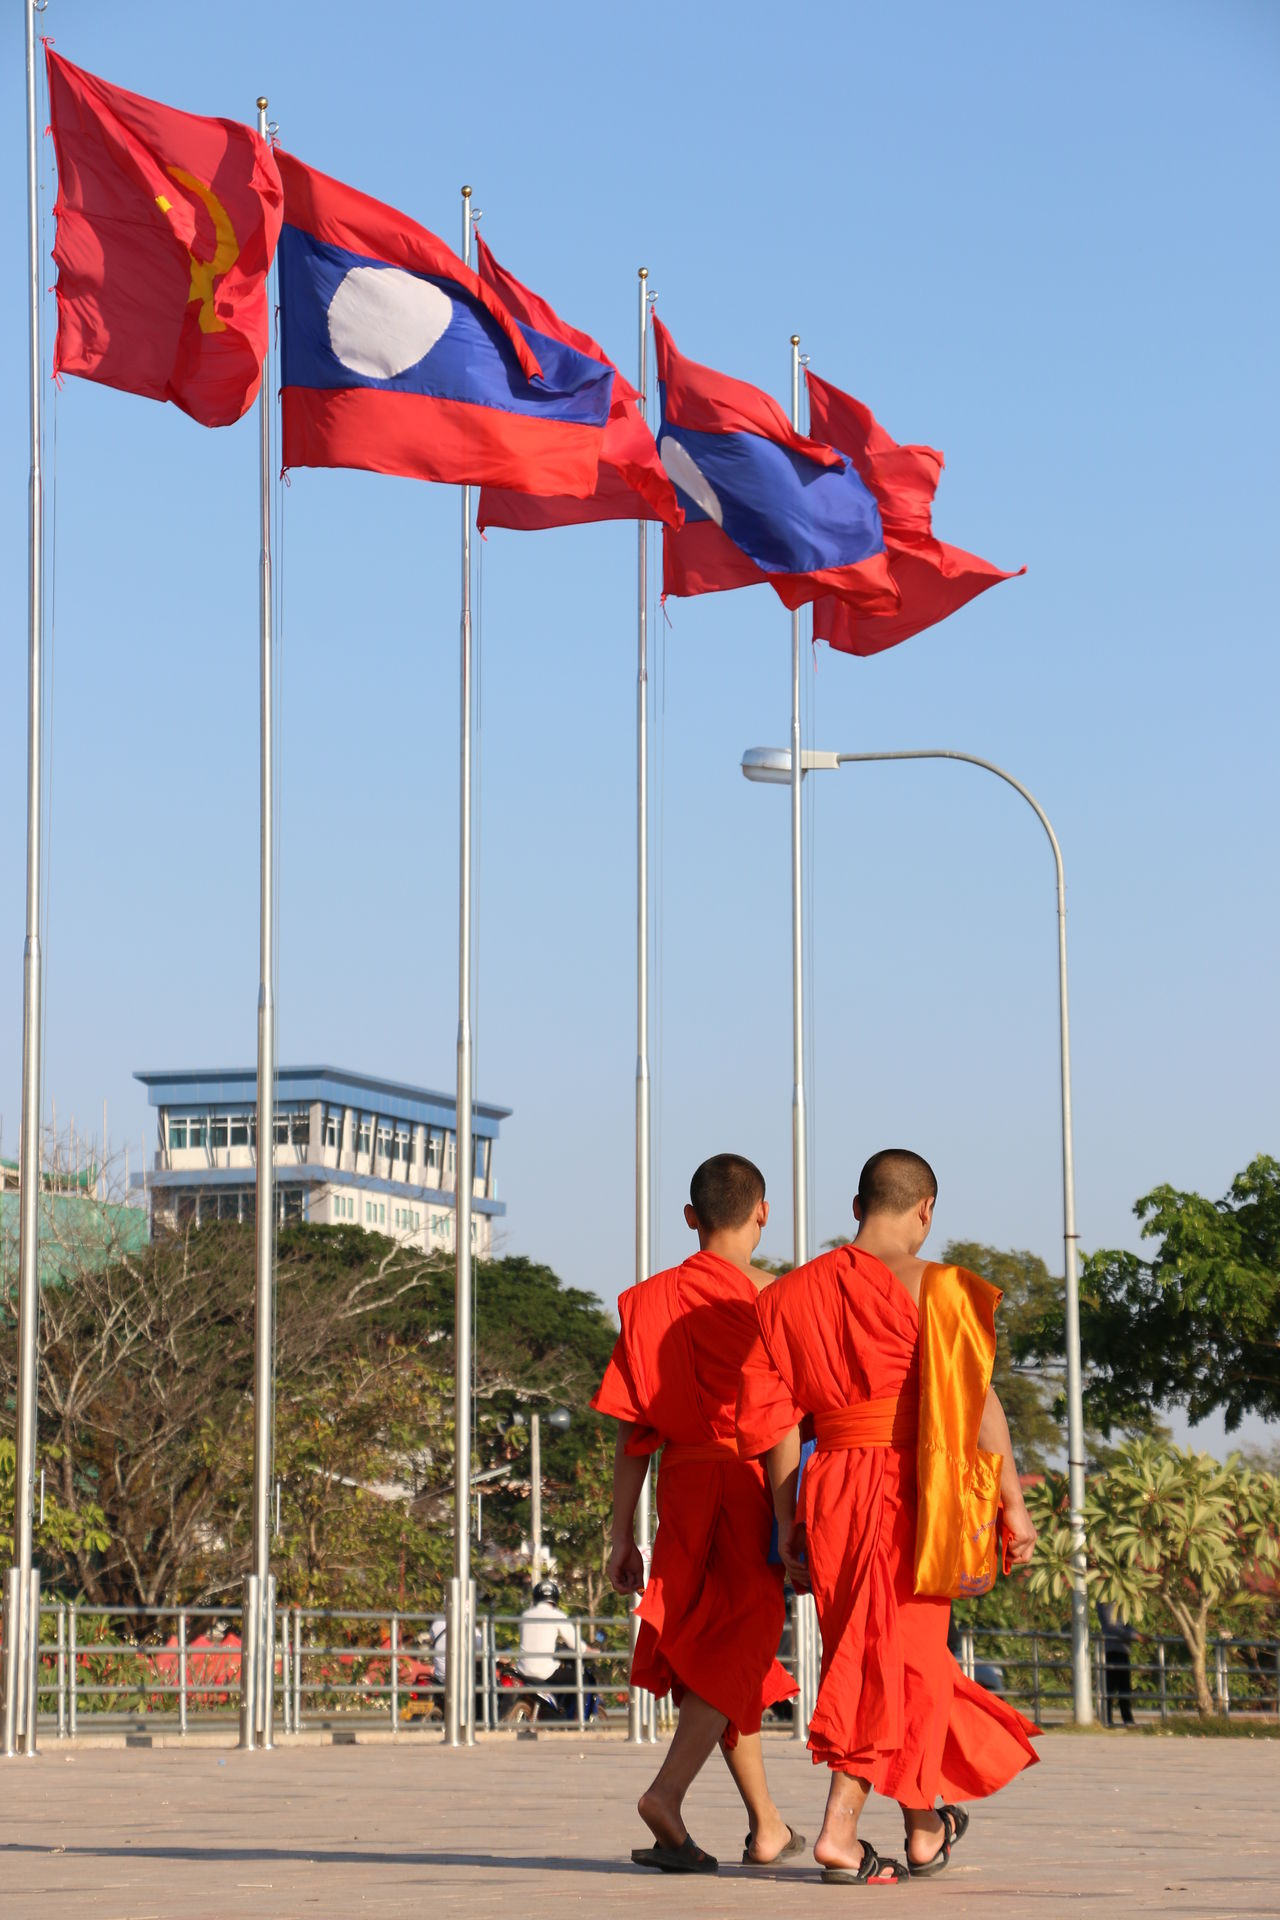 Mekong promenade Blue Sky Buddist Buddist Monk Culture Flag Flags Flags In The Wind  Laos Mekong Promenade Mekong River Monks Monks Walk Outdoors Promenade Religion Summer Travel Travel Photography Two People Vientiane Walking Monks